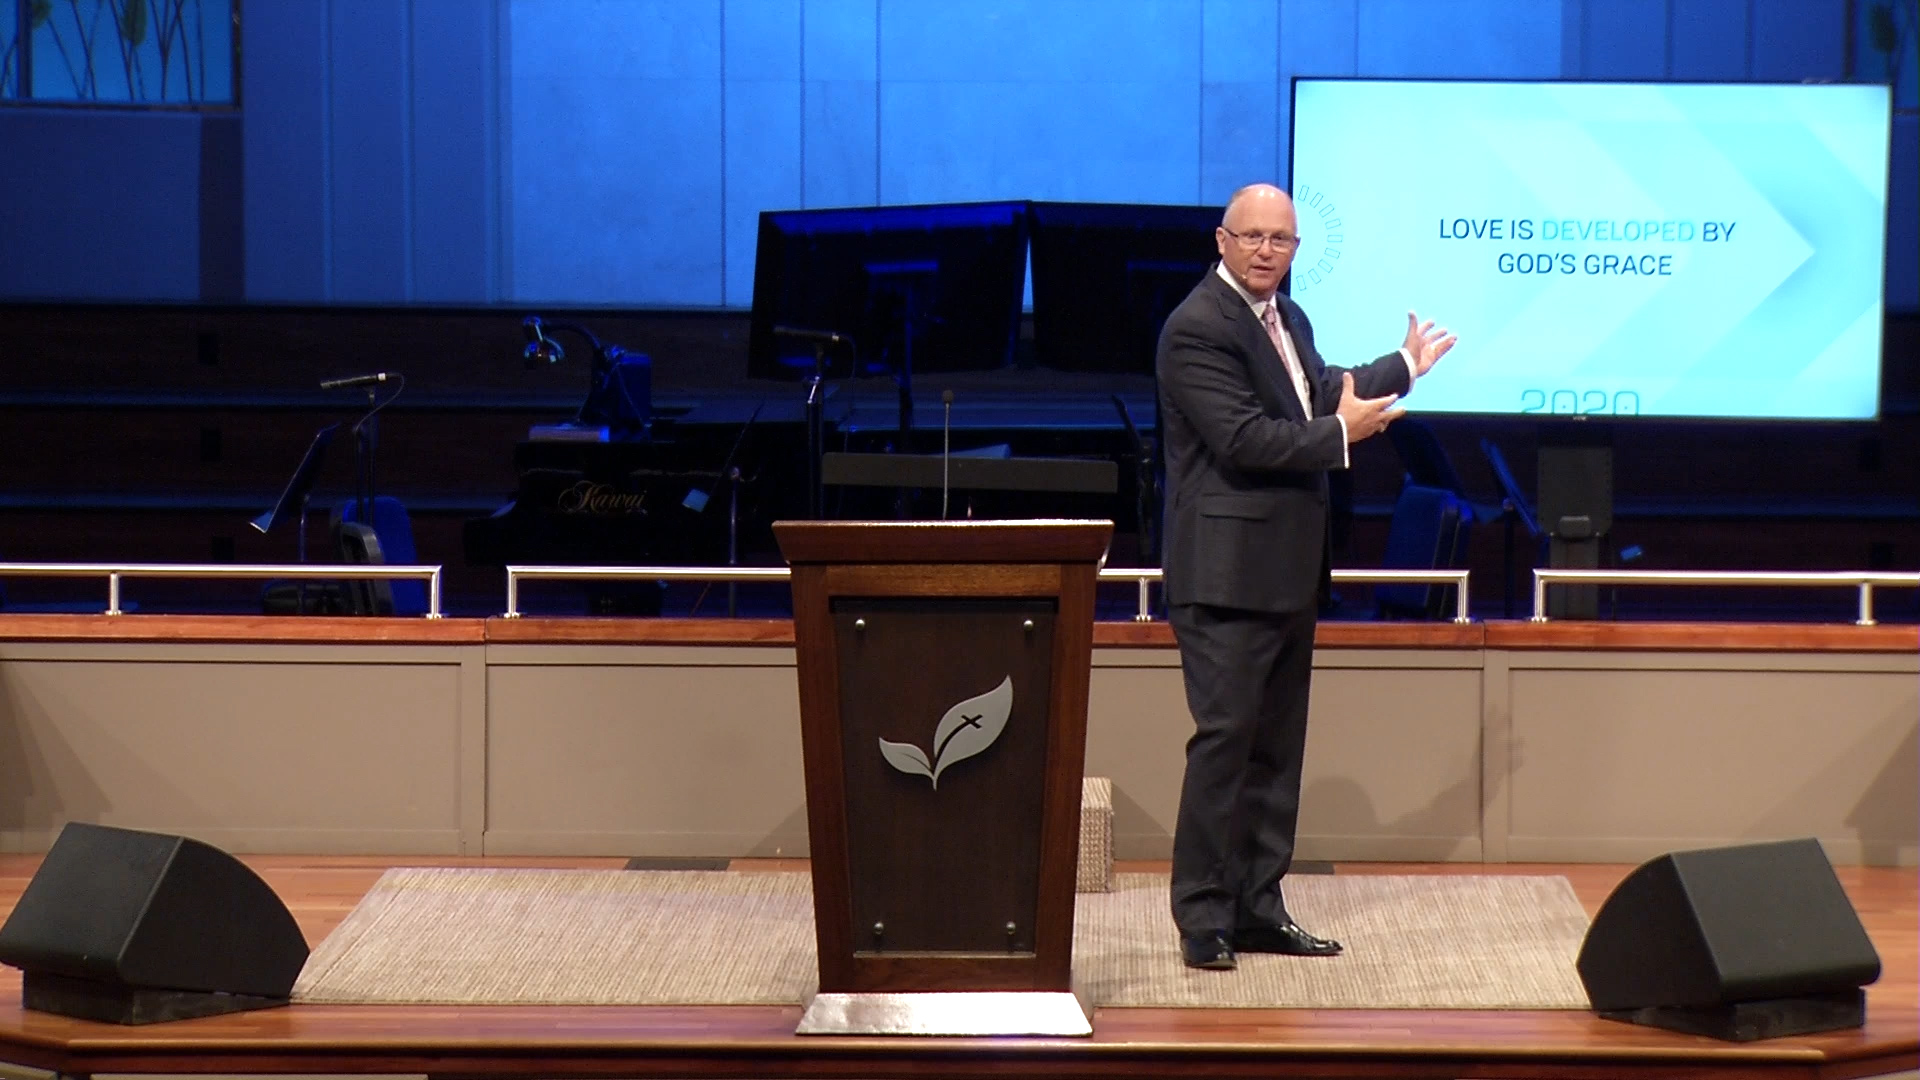 Pastor Paul Chappell: Reaching Forth in Love